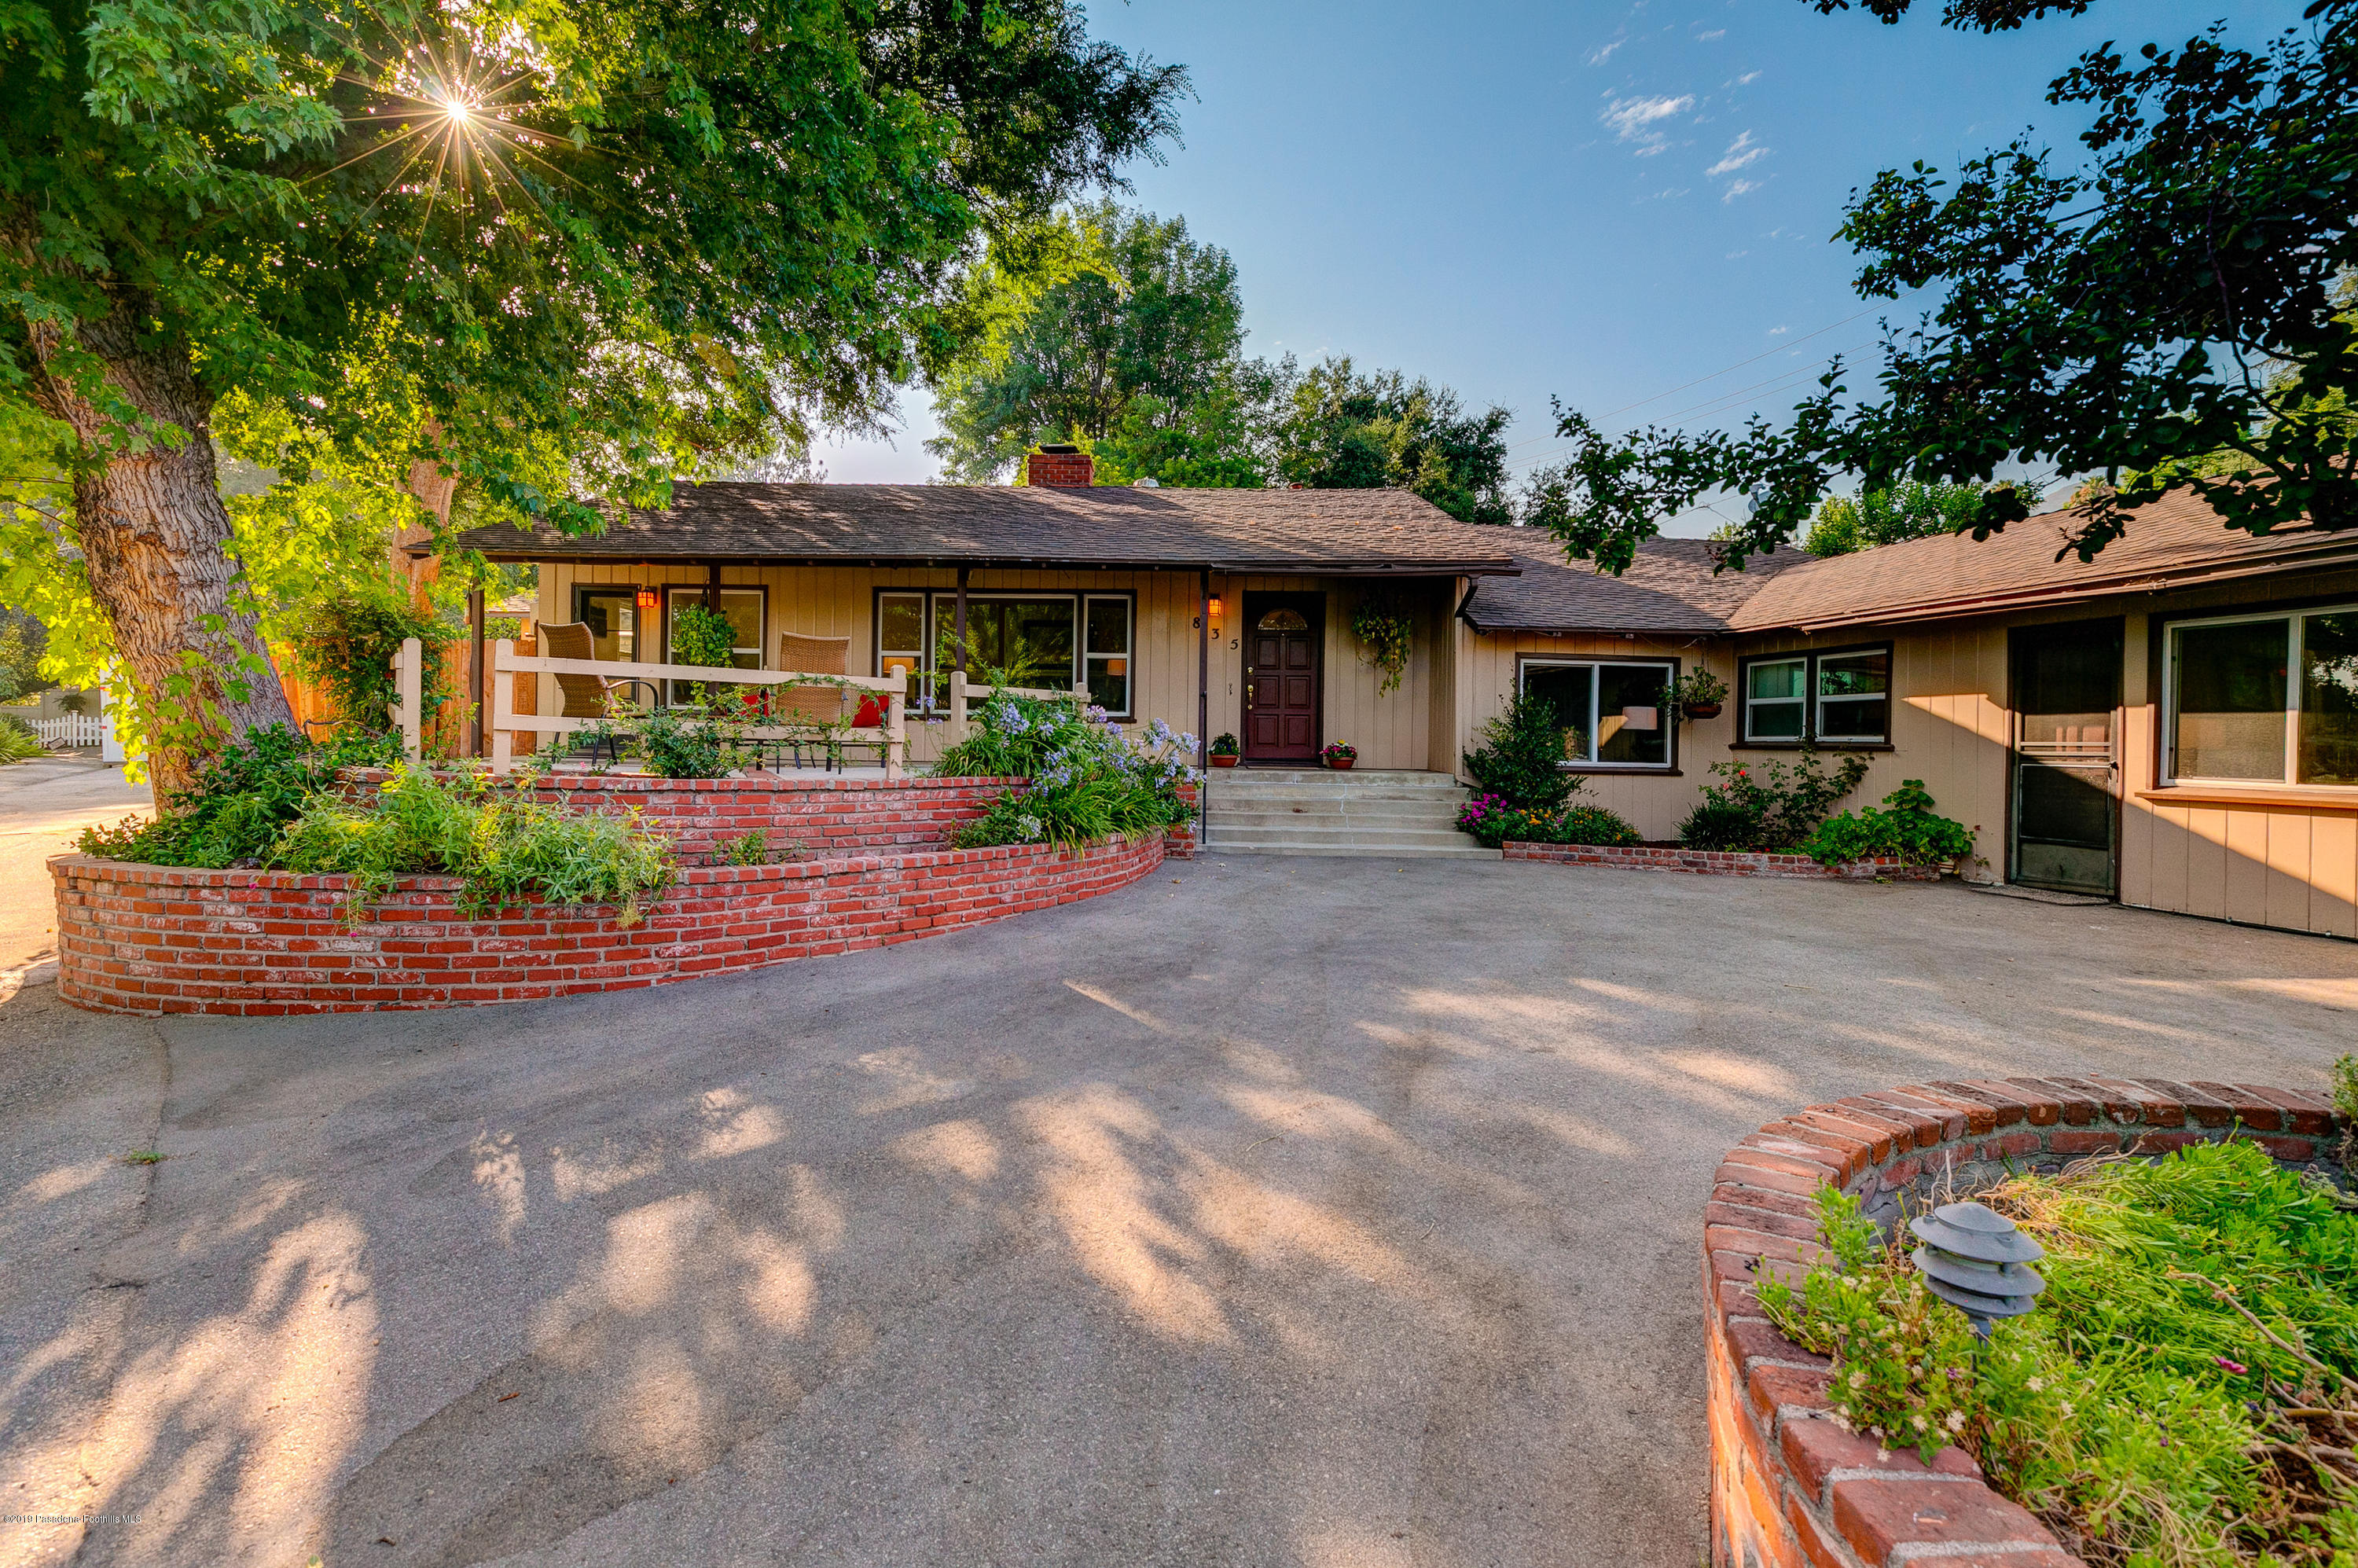 835 Old Landmark Lane, La Canada Flintridge, California